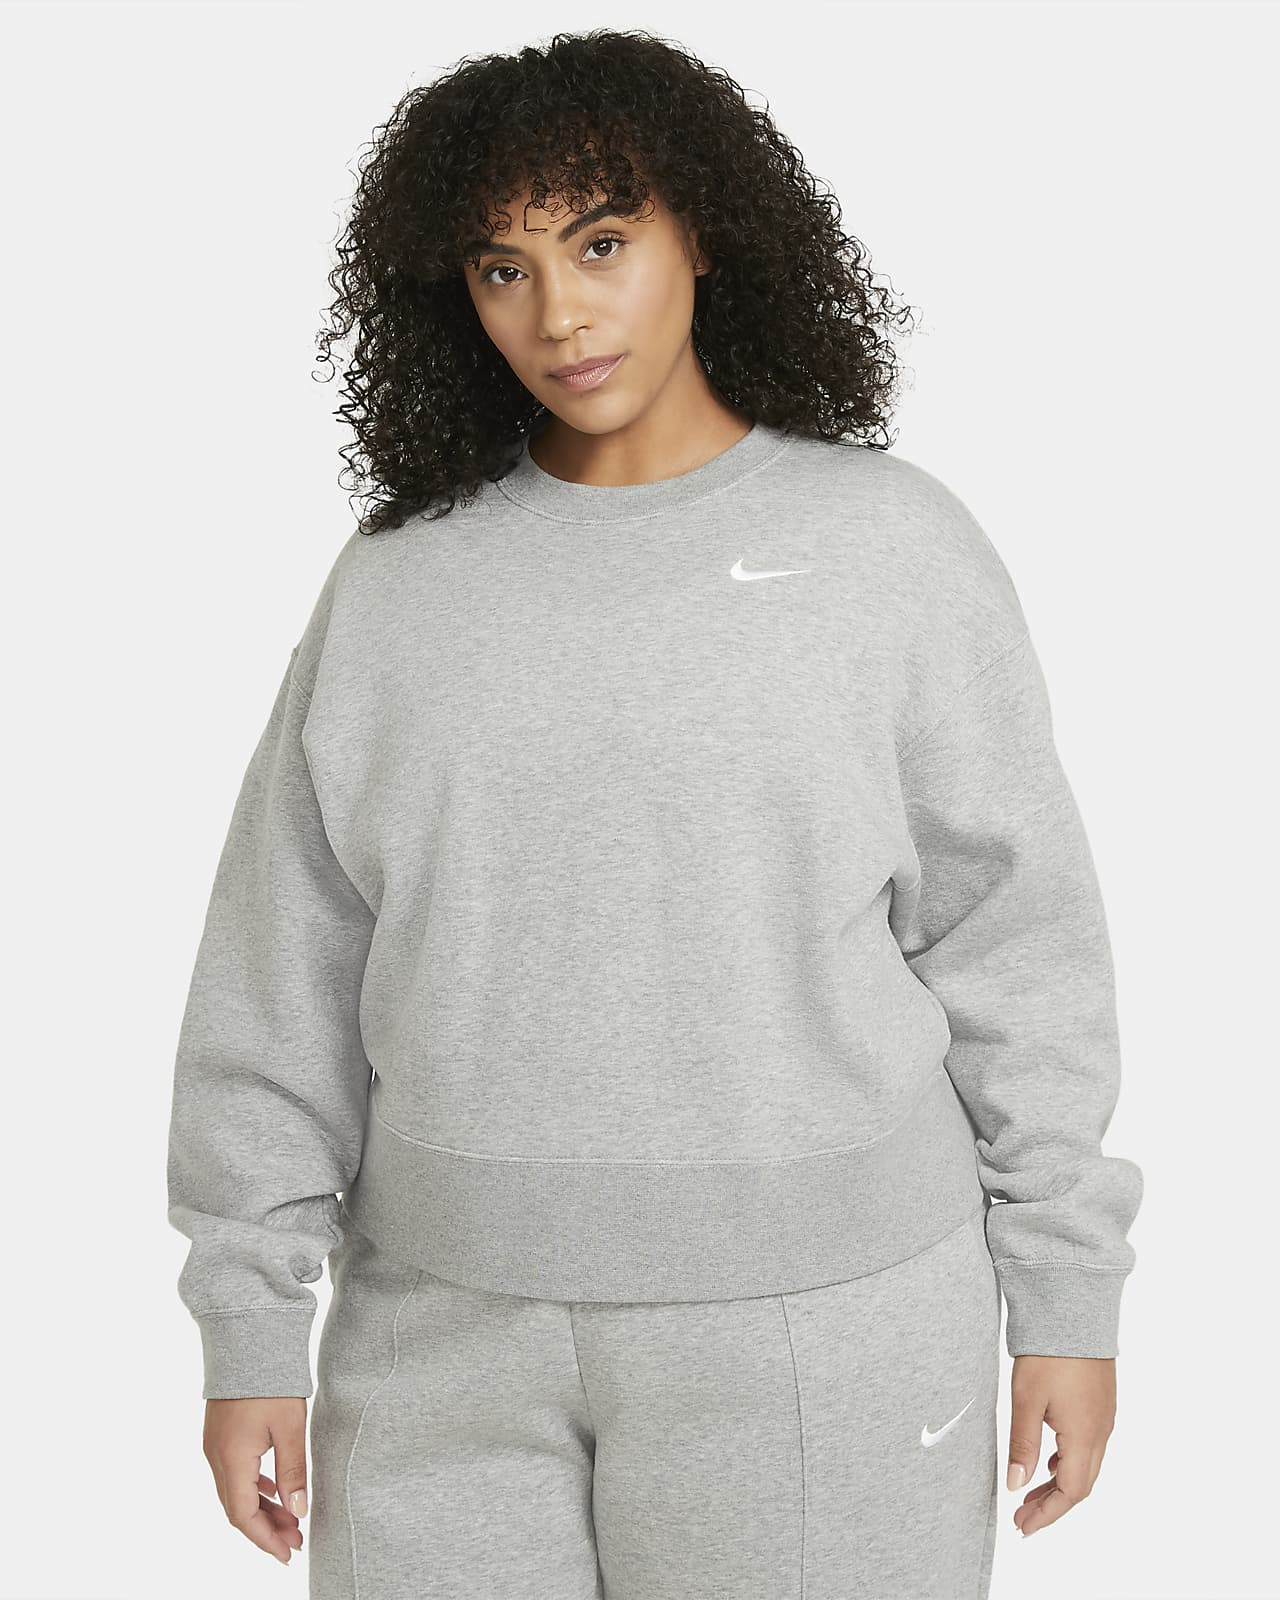 Haut Nike Sportswear Essential pour Femme (grande taille)